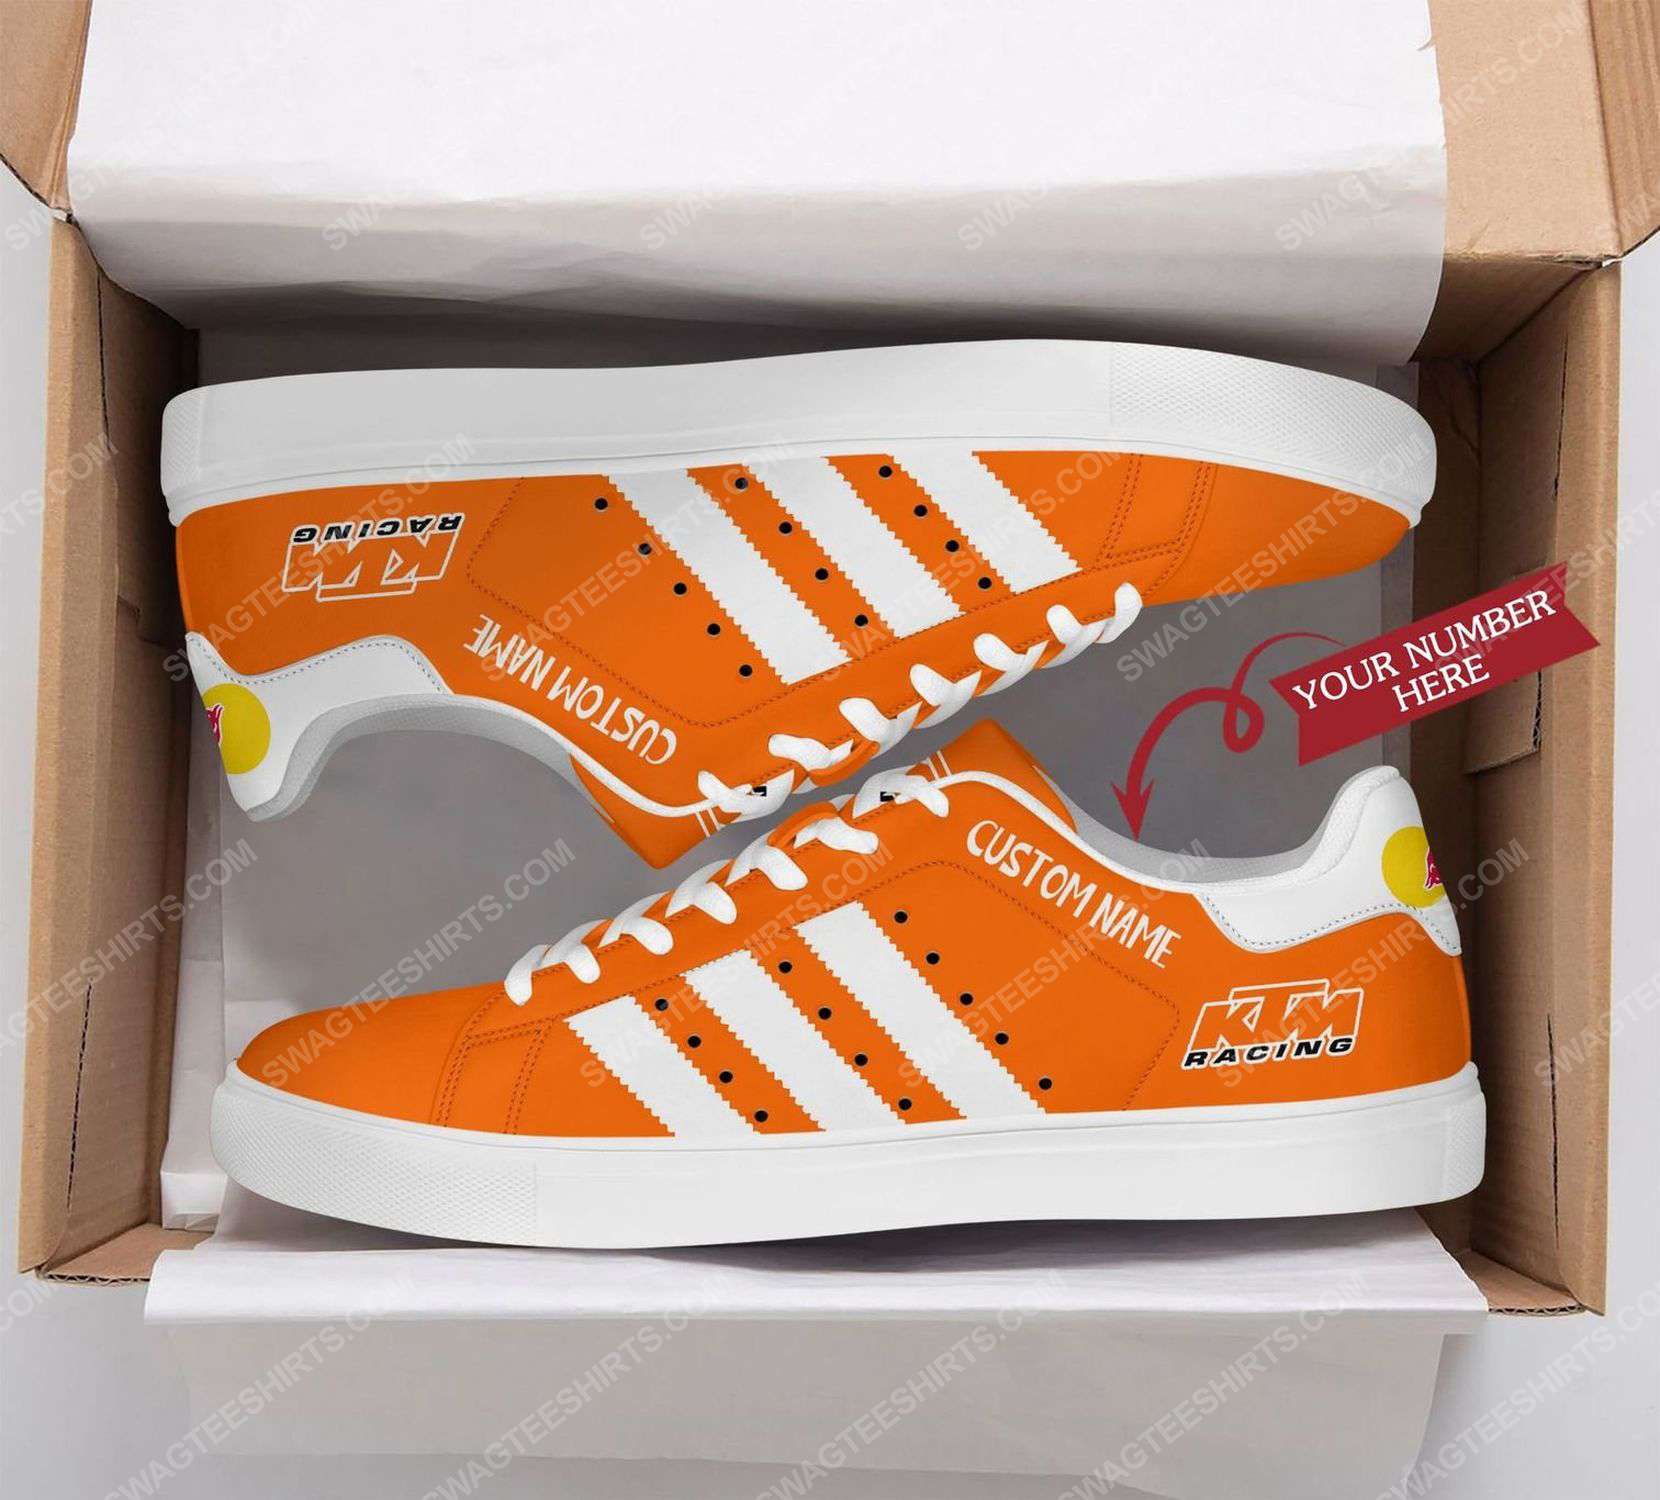 Custom red bull ktm factory racing stan smith shoes